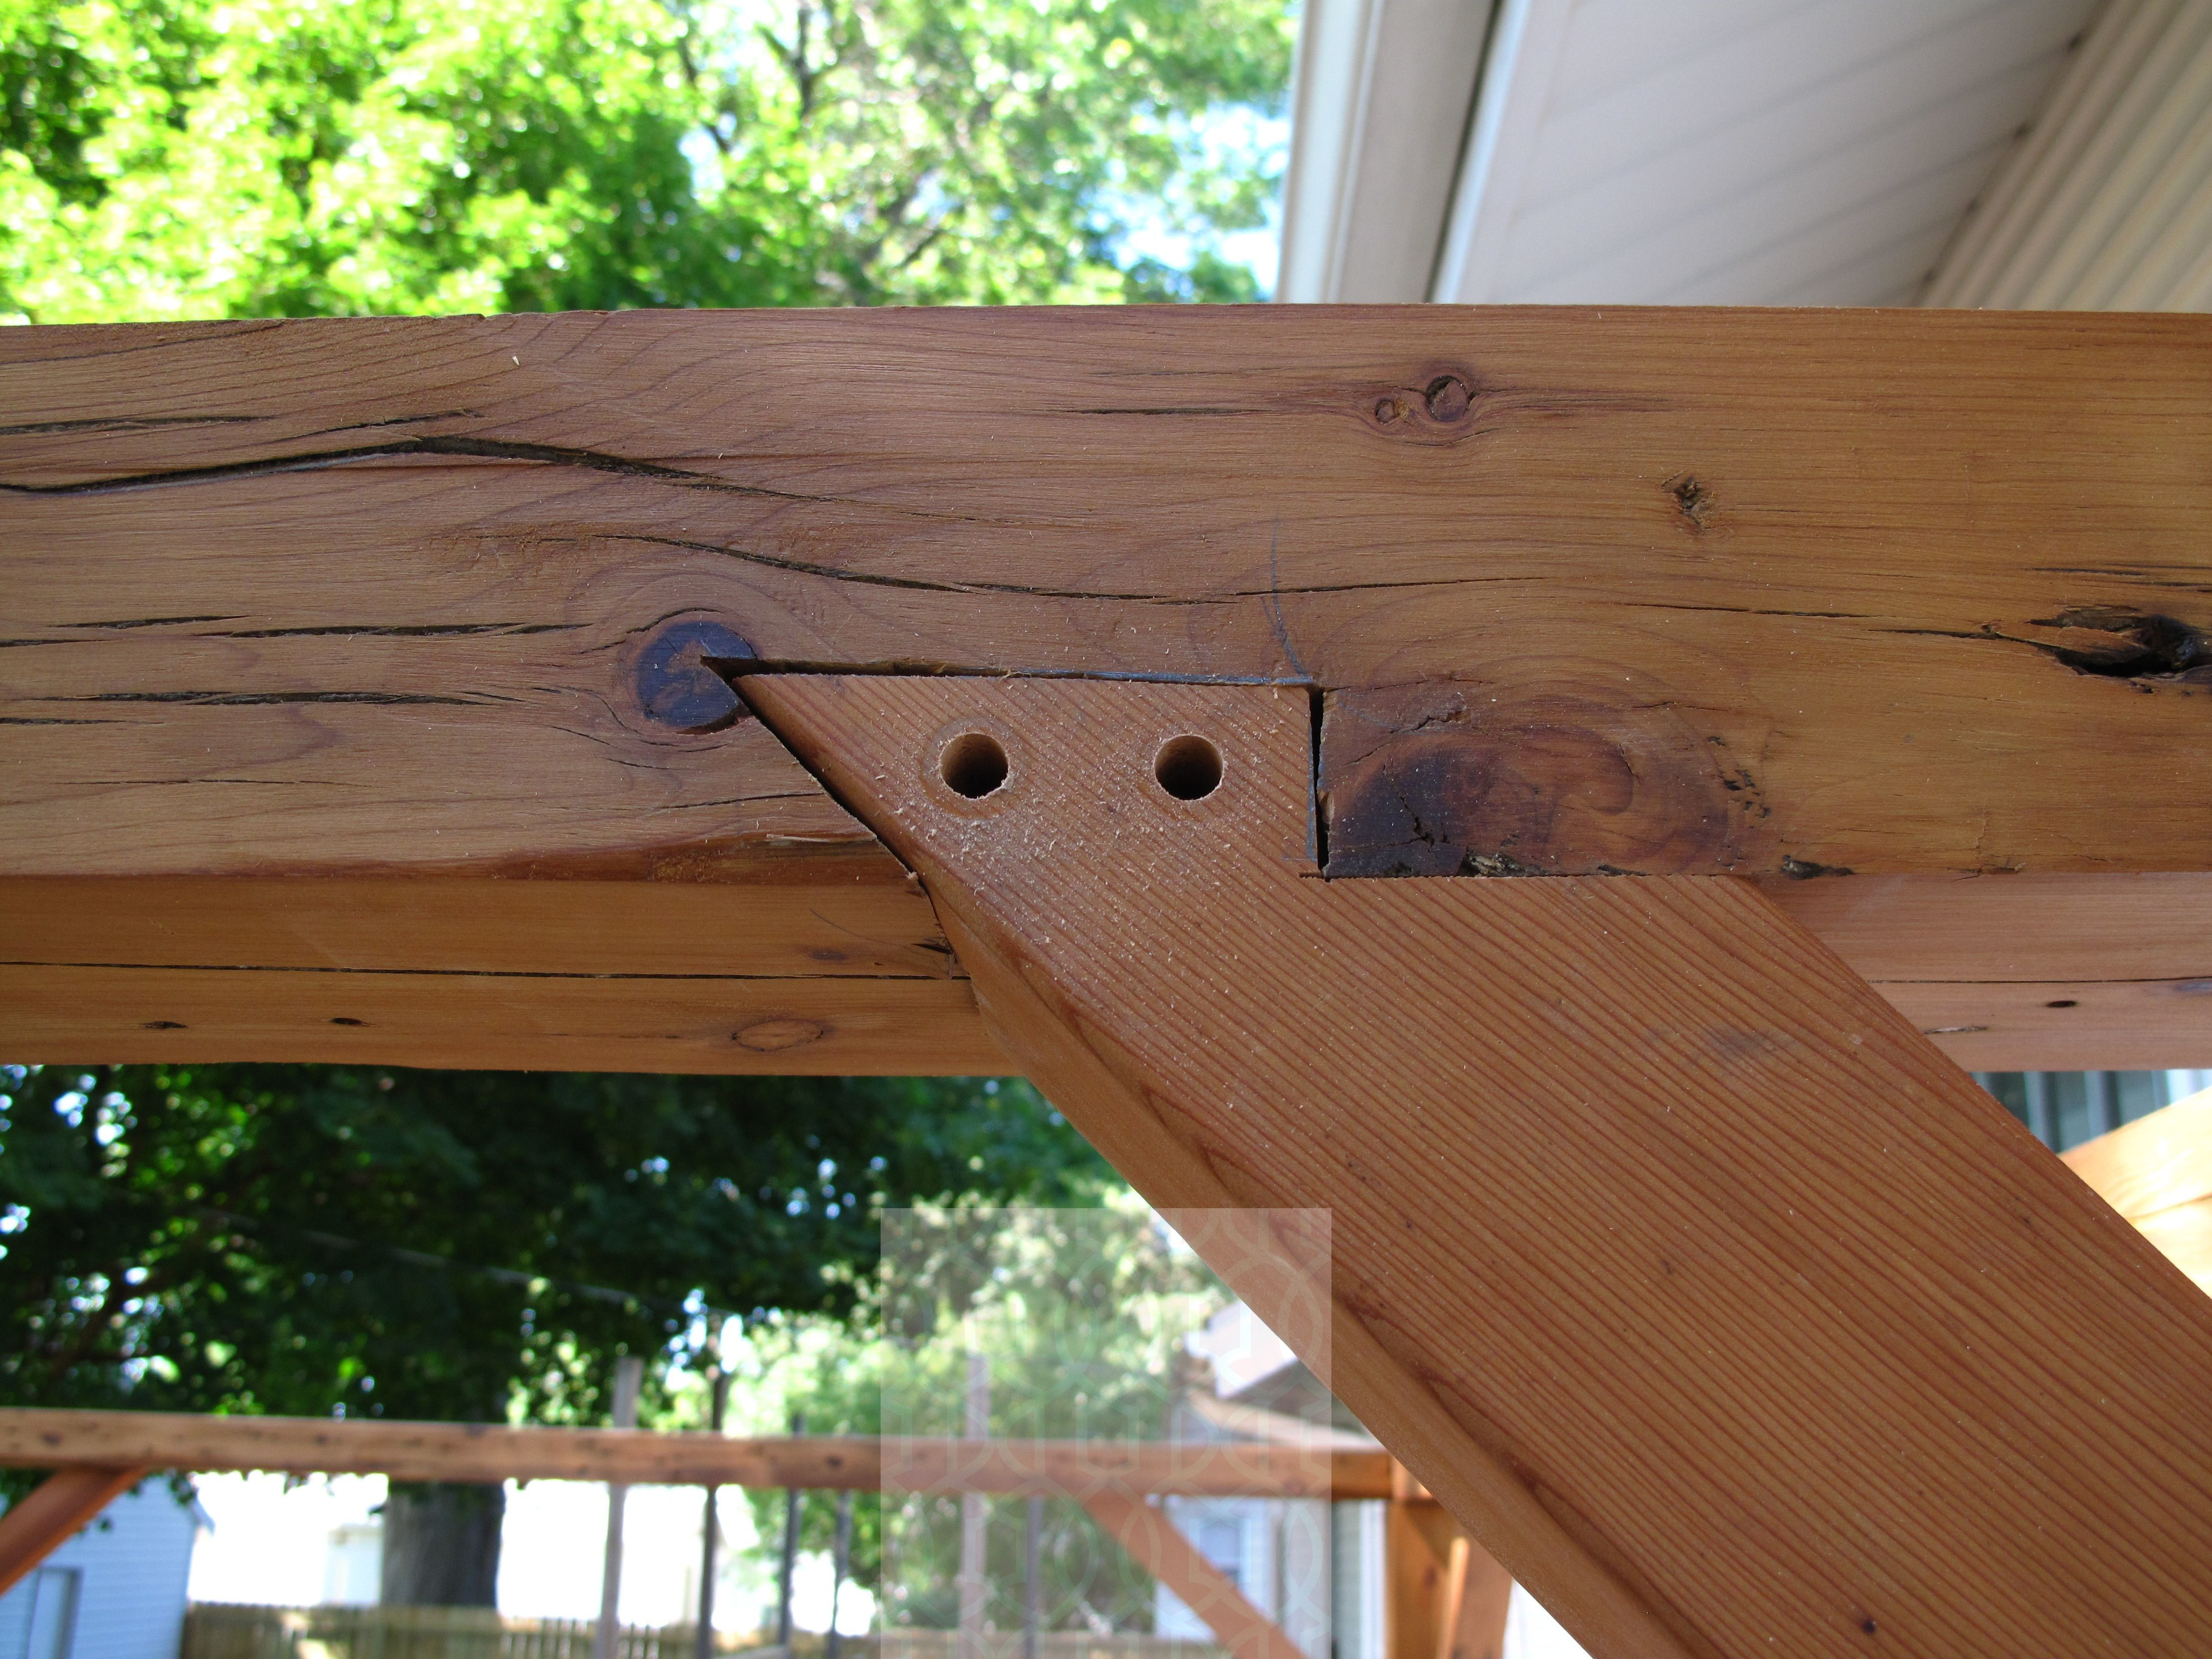 Super Genius Diy Ideas Wood Working Shelf Woodworking Projects Plans Wood Working To Sell Paint Woo Timber Frame Construction Timber Frame Joinery Woodworking